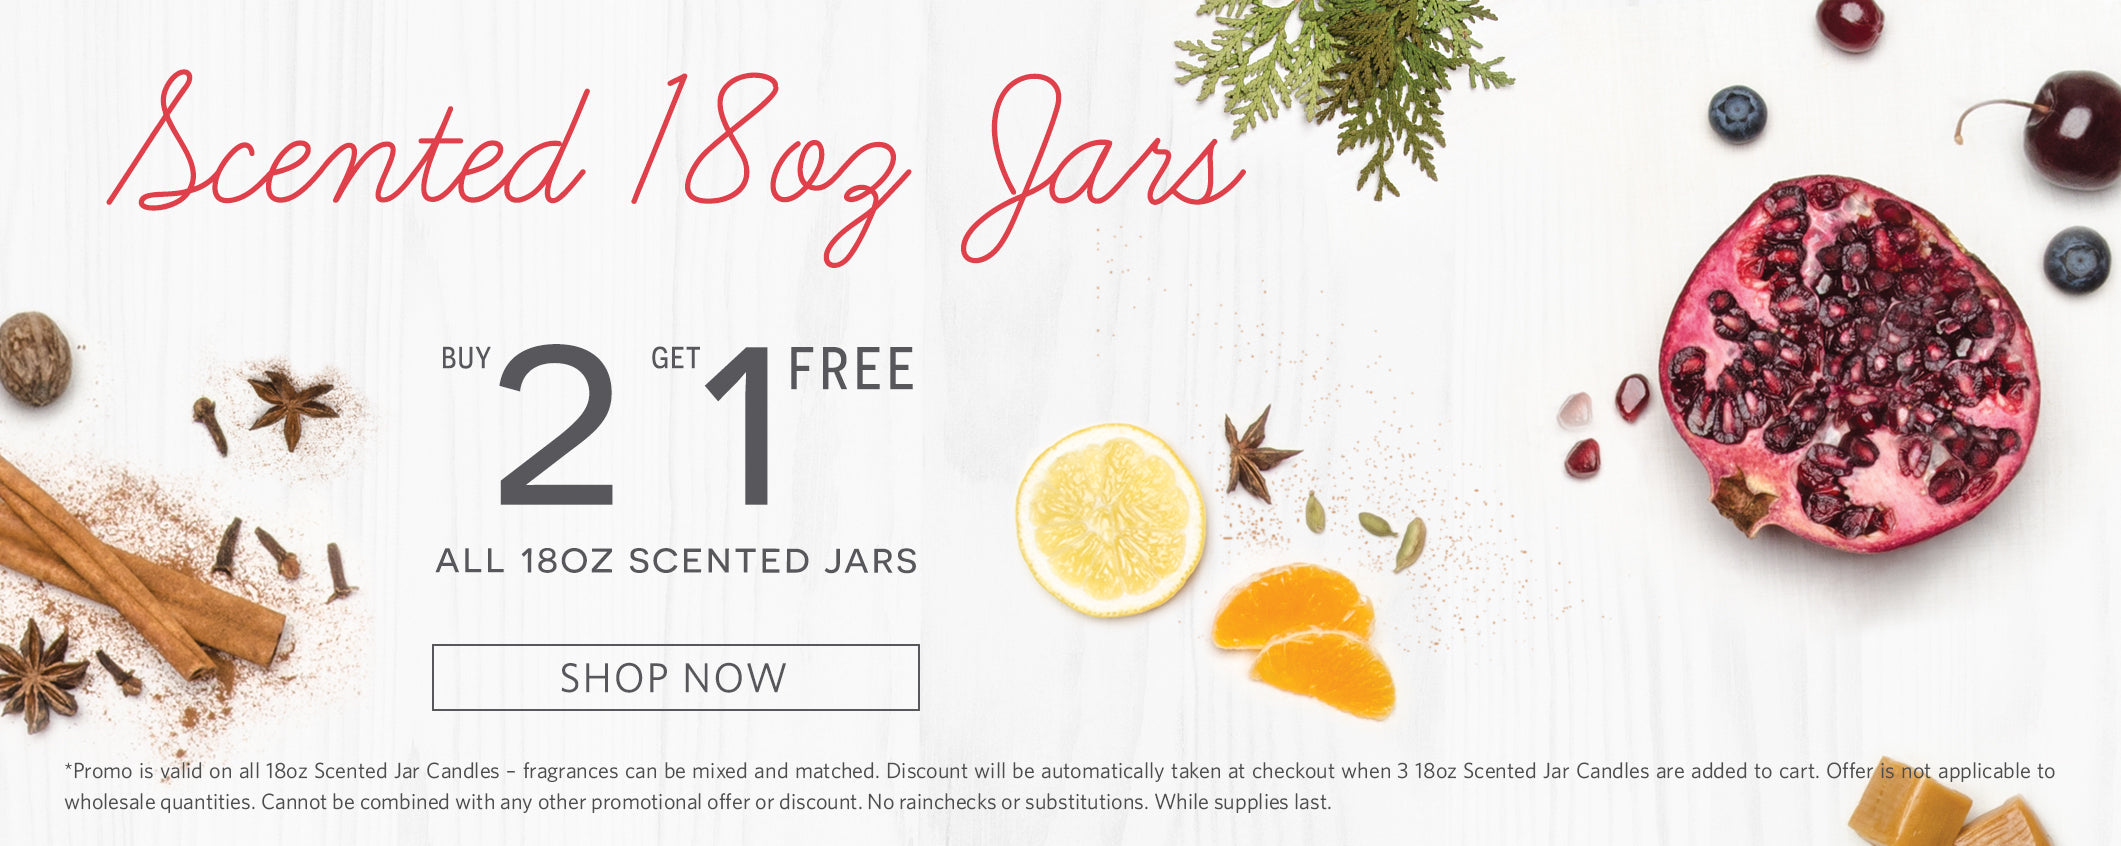 Scented 18oz Jars. Buy 2 Get 1 free all 18oz scented jars.